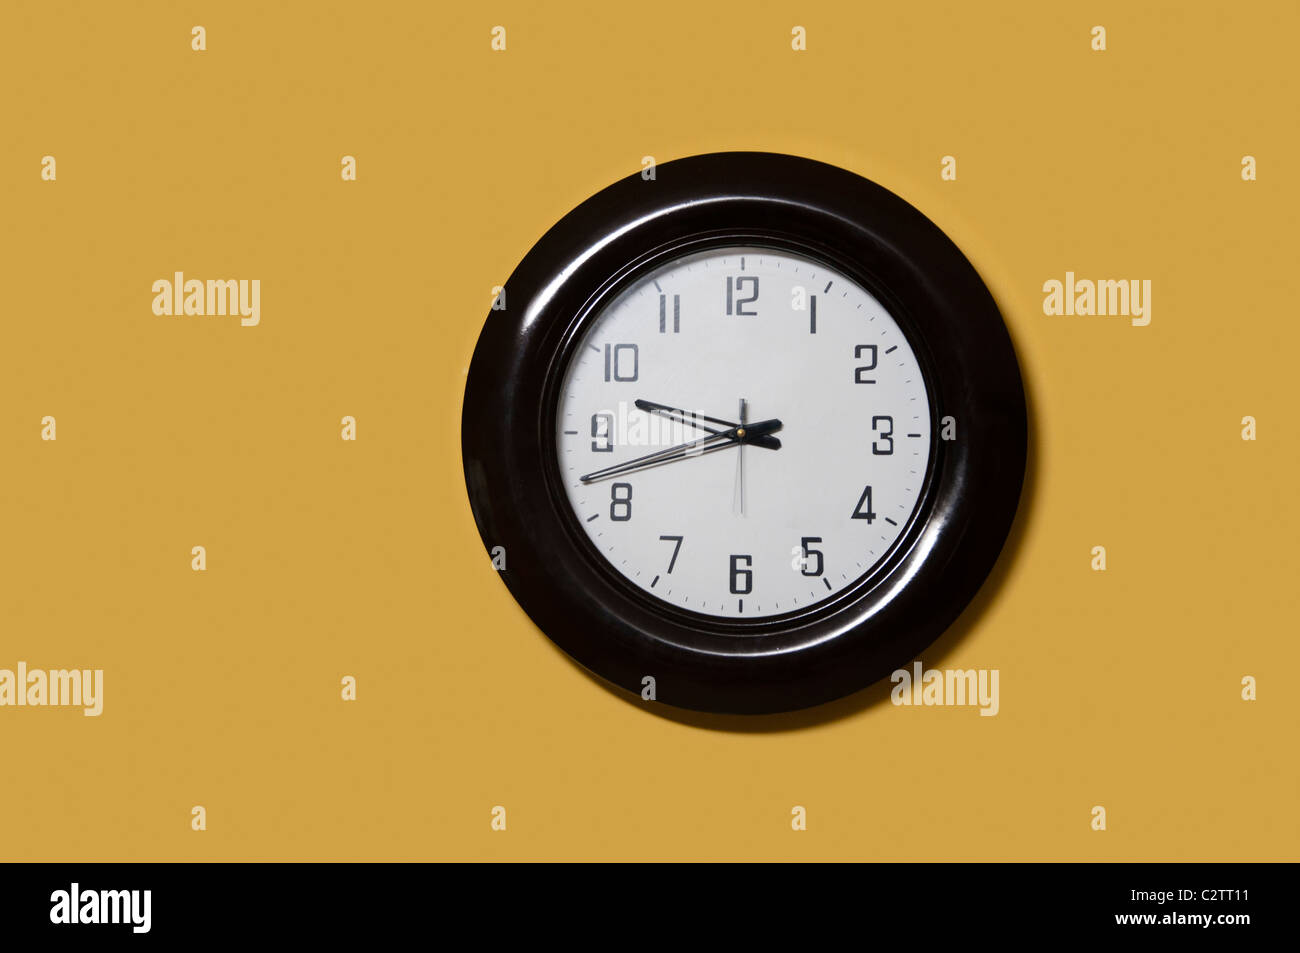 Clock on office wall - Stock Image